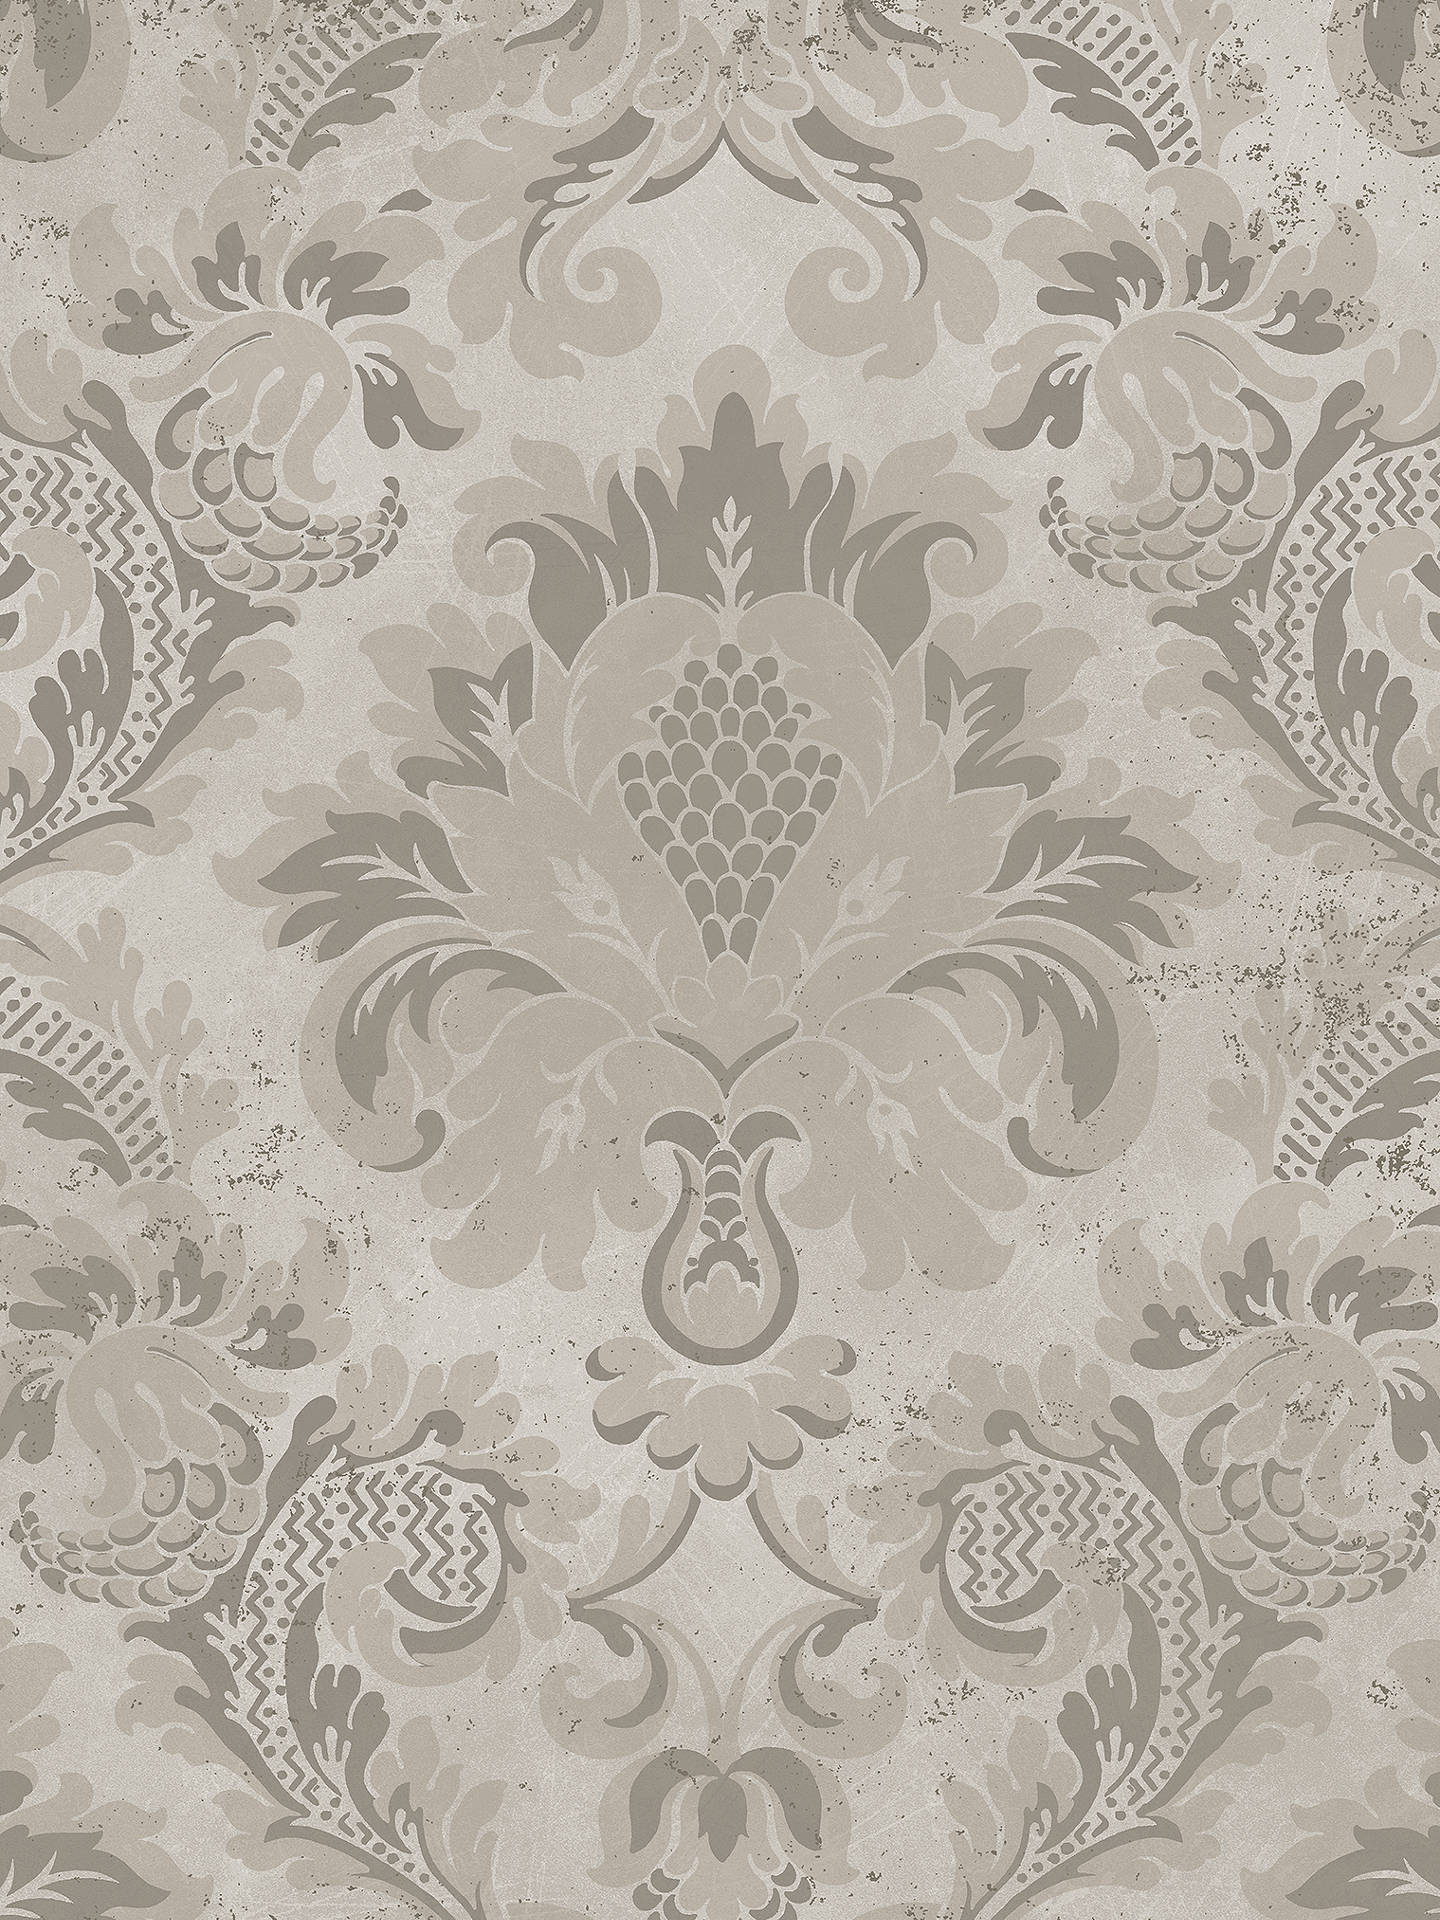 Buy Cole & Son Mariinsky Stravinsky Paste the Wall Wallpaper, Gilver 108/4019 Online at johnlewis.com